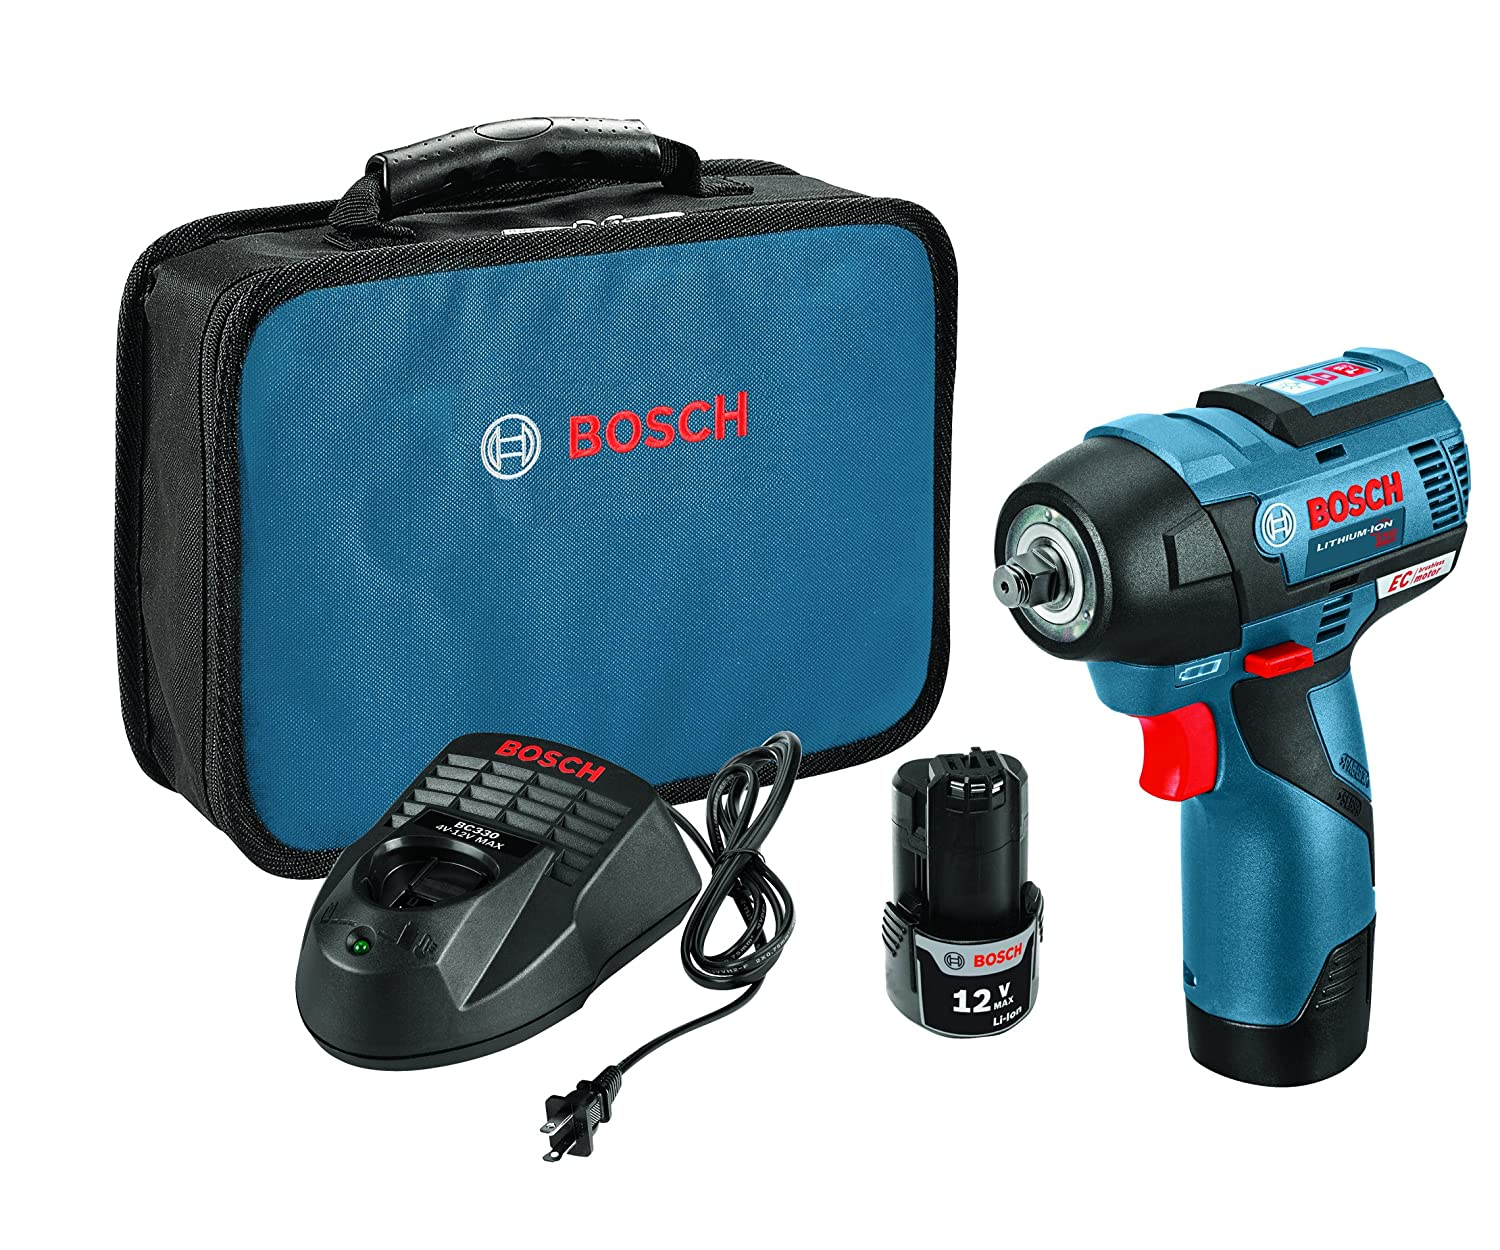 Bosch PS82-02 12V Max EC Brushless 3 8 Impact Wrench Kit